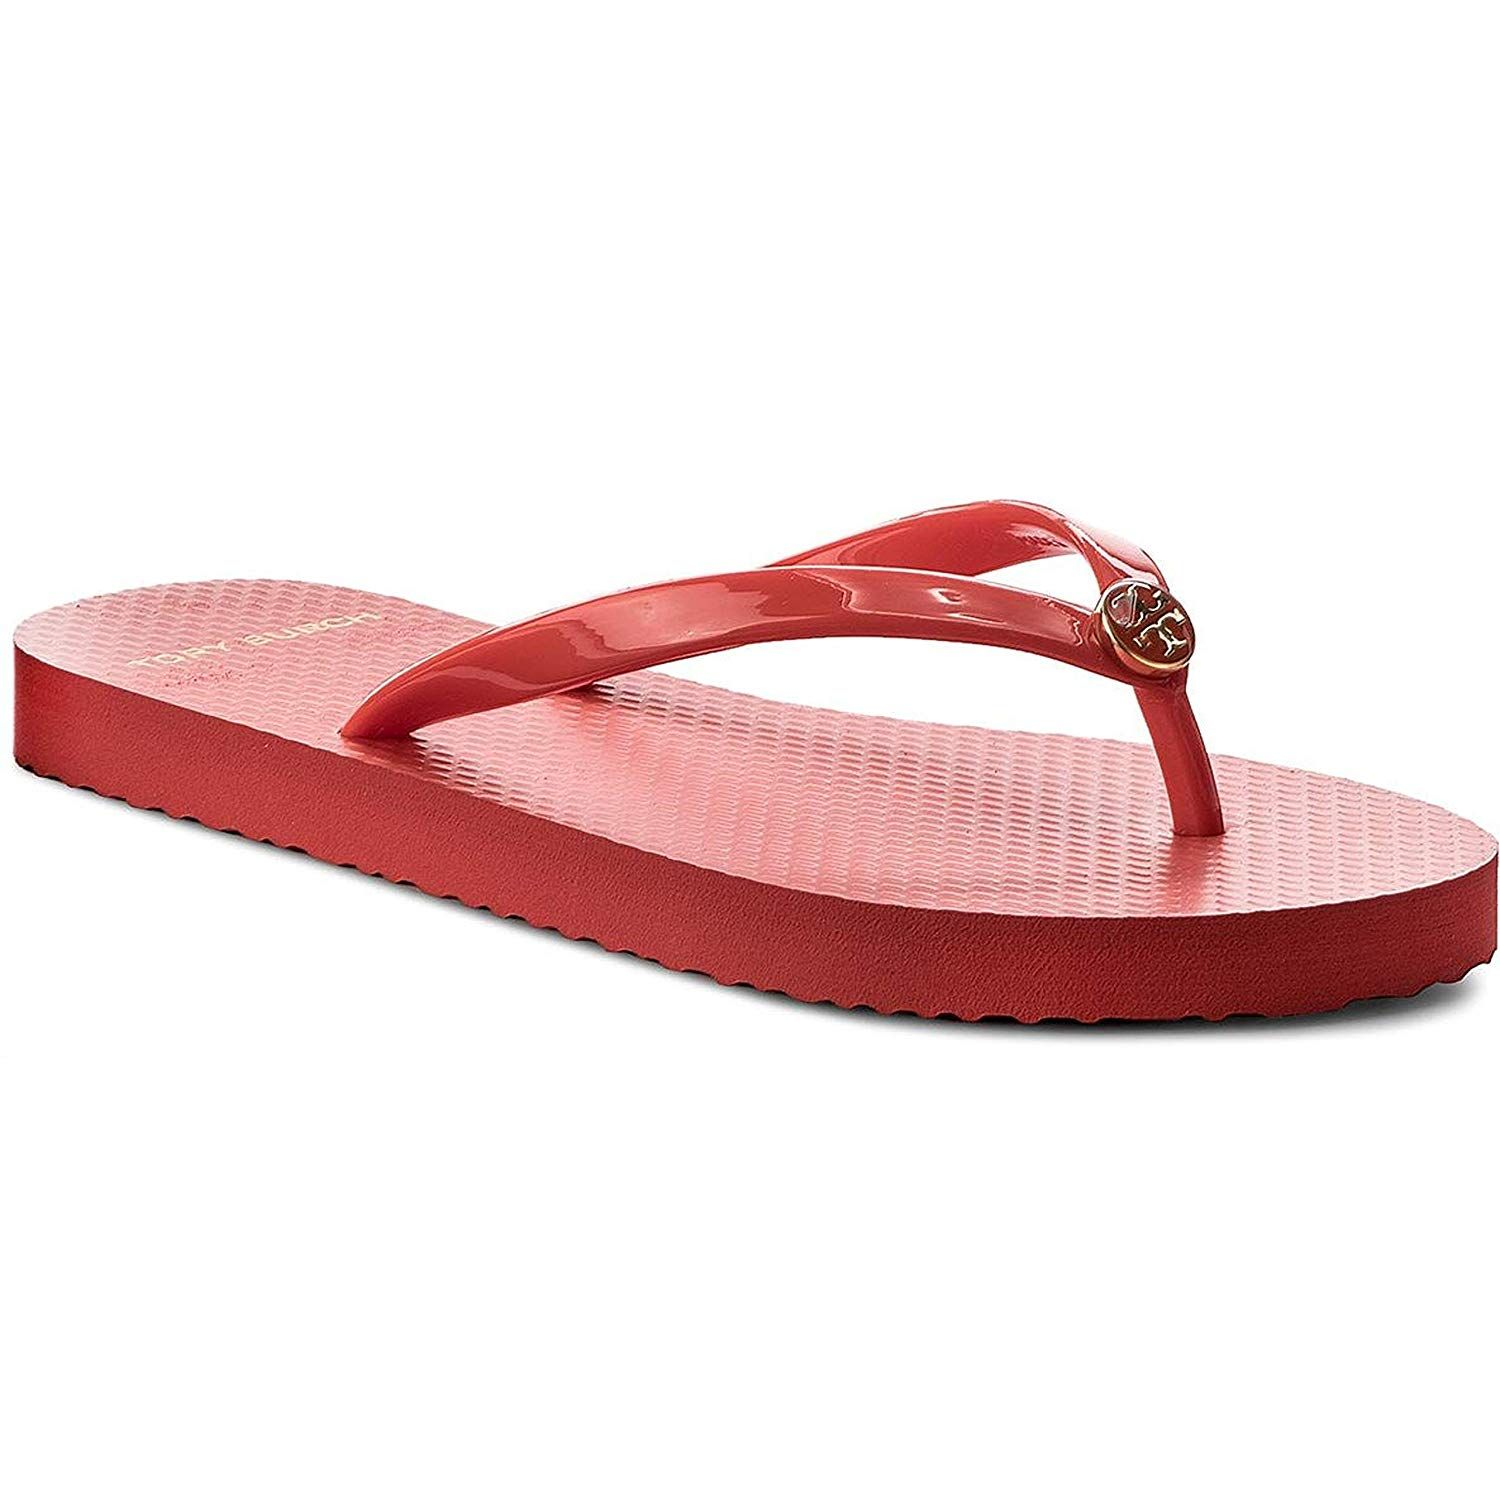 e91b234fb56e7b Tory Burch Solid Thin Flip Flop Sandals in Poppy Orange Size 8     Very  kind of you to have dropped by to view our image. (This is an affiliate  link)   ...